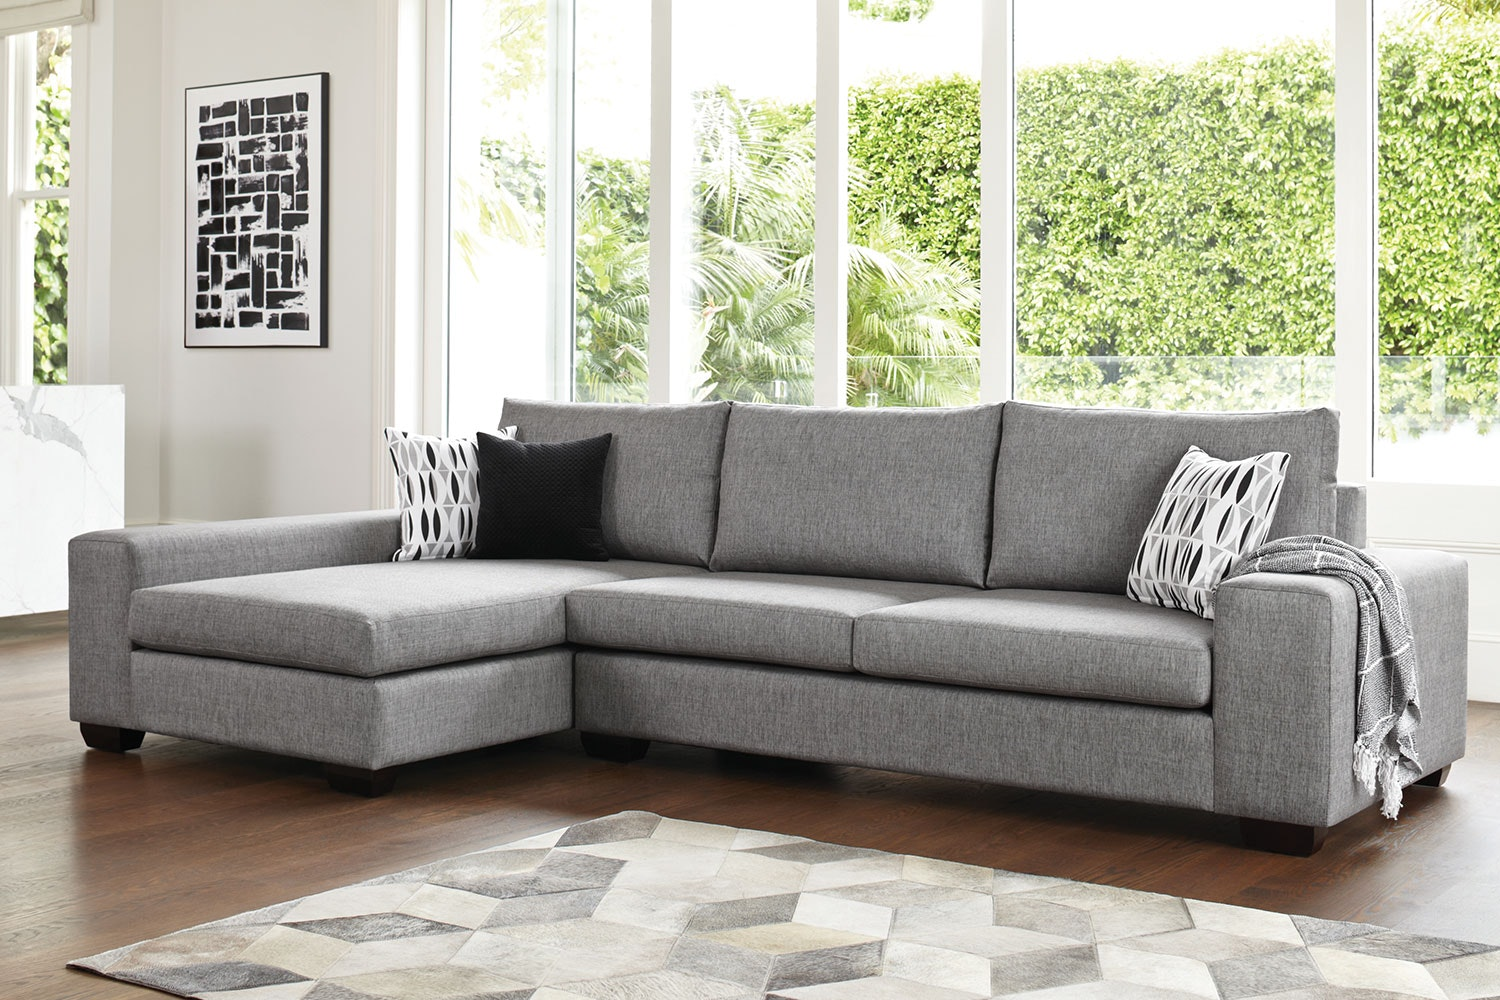 Charming Kingdom 4 Seater Fabric Sofa With Chaise By Furniture Haven ...